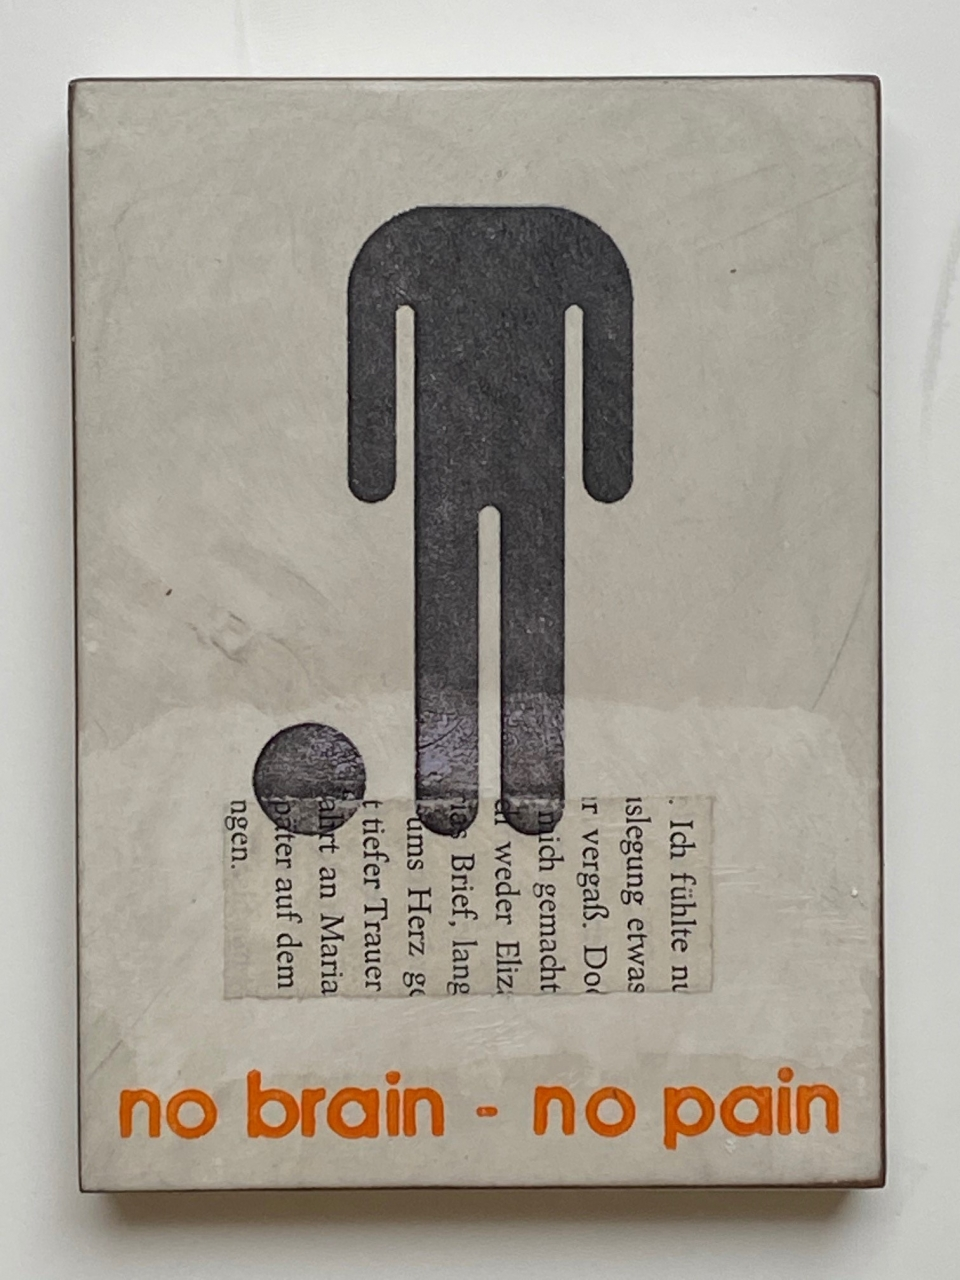 No brain-no pain